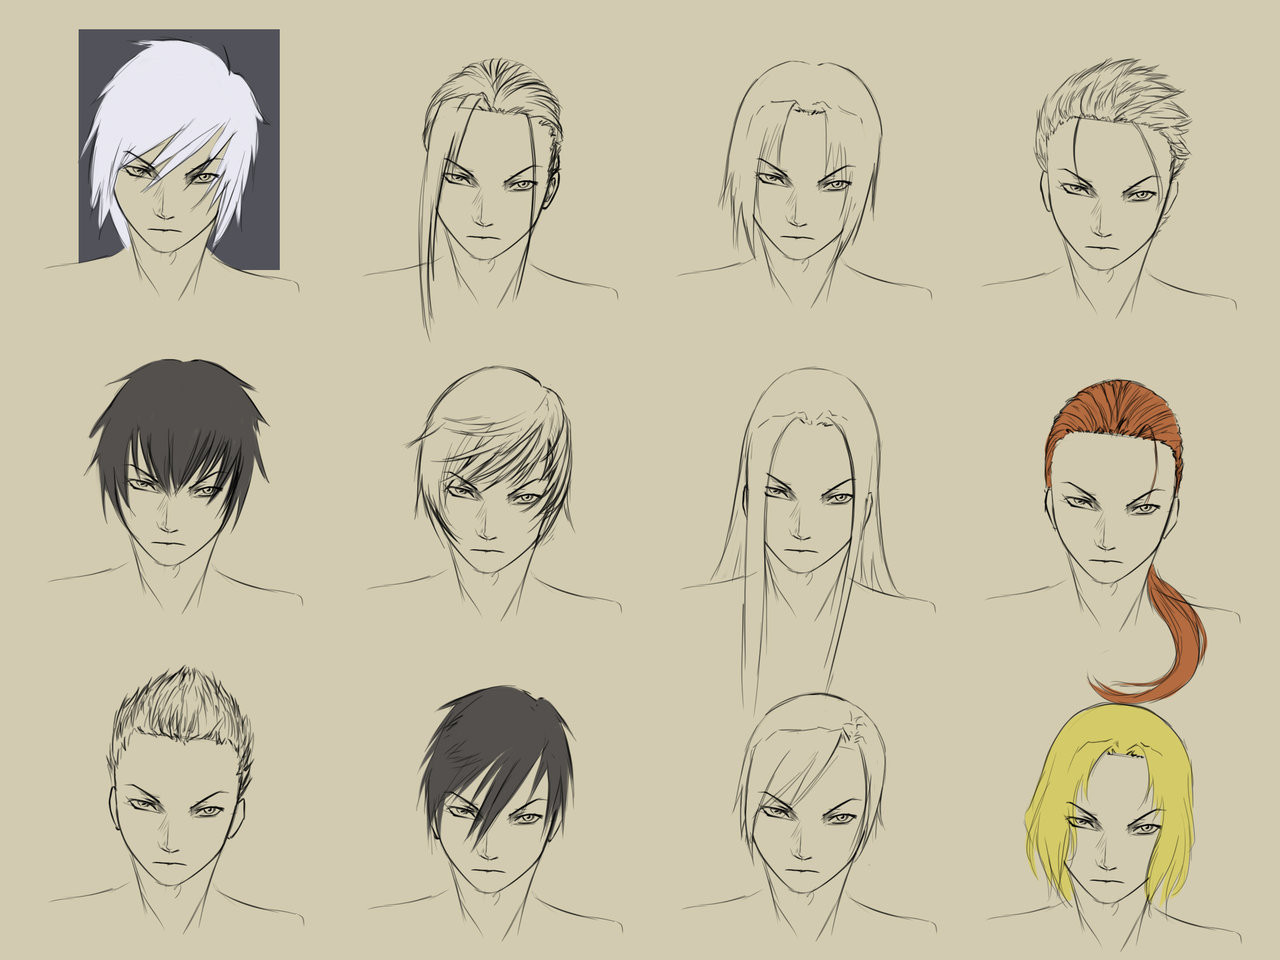 Best ideas about Male Anime Hairstyles . Save or Pin Male Hairstyles by forgotten wings on DeviantArt Now.